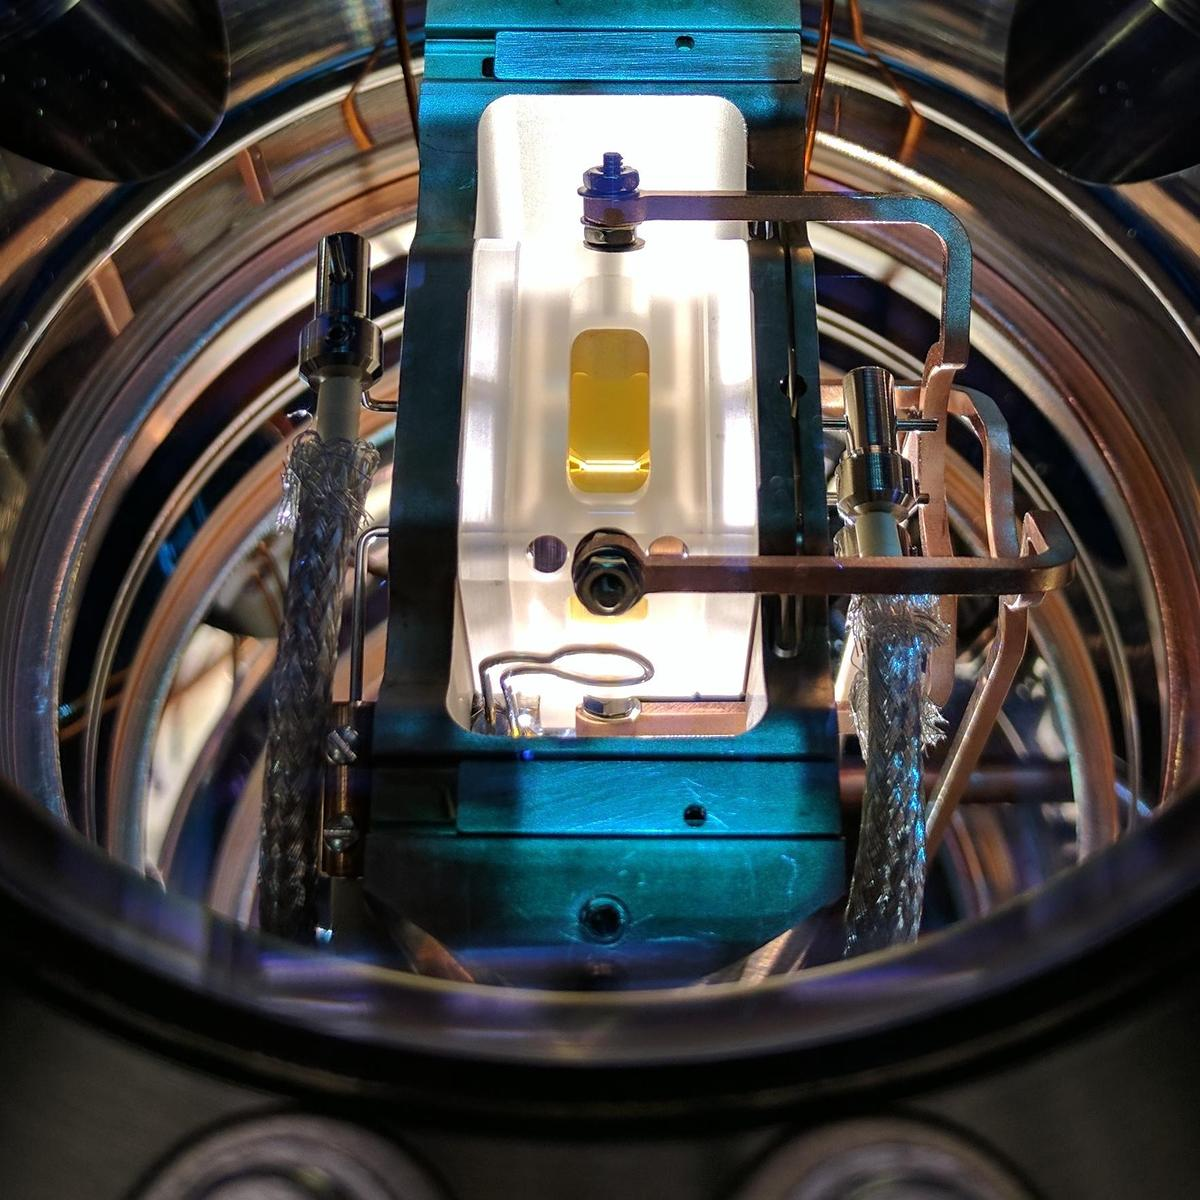 Ion trap in the Quantum Control Laboratory used in the experiment for the research.